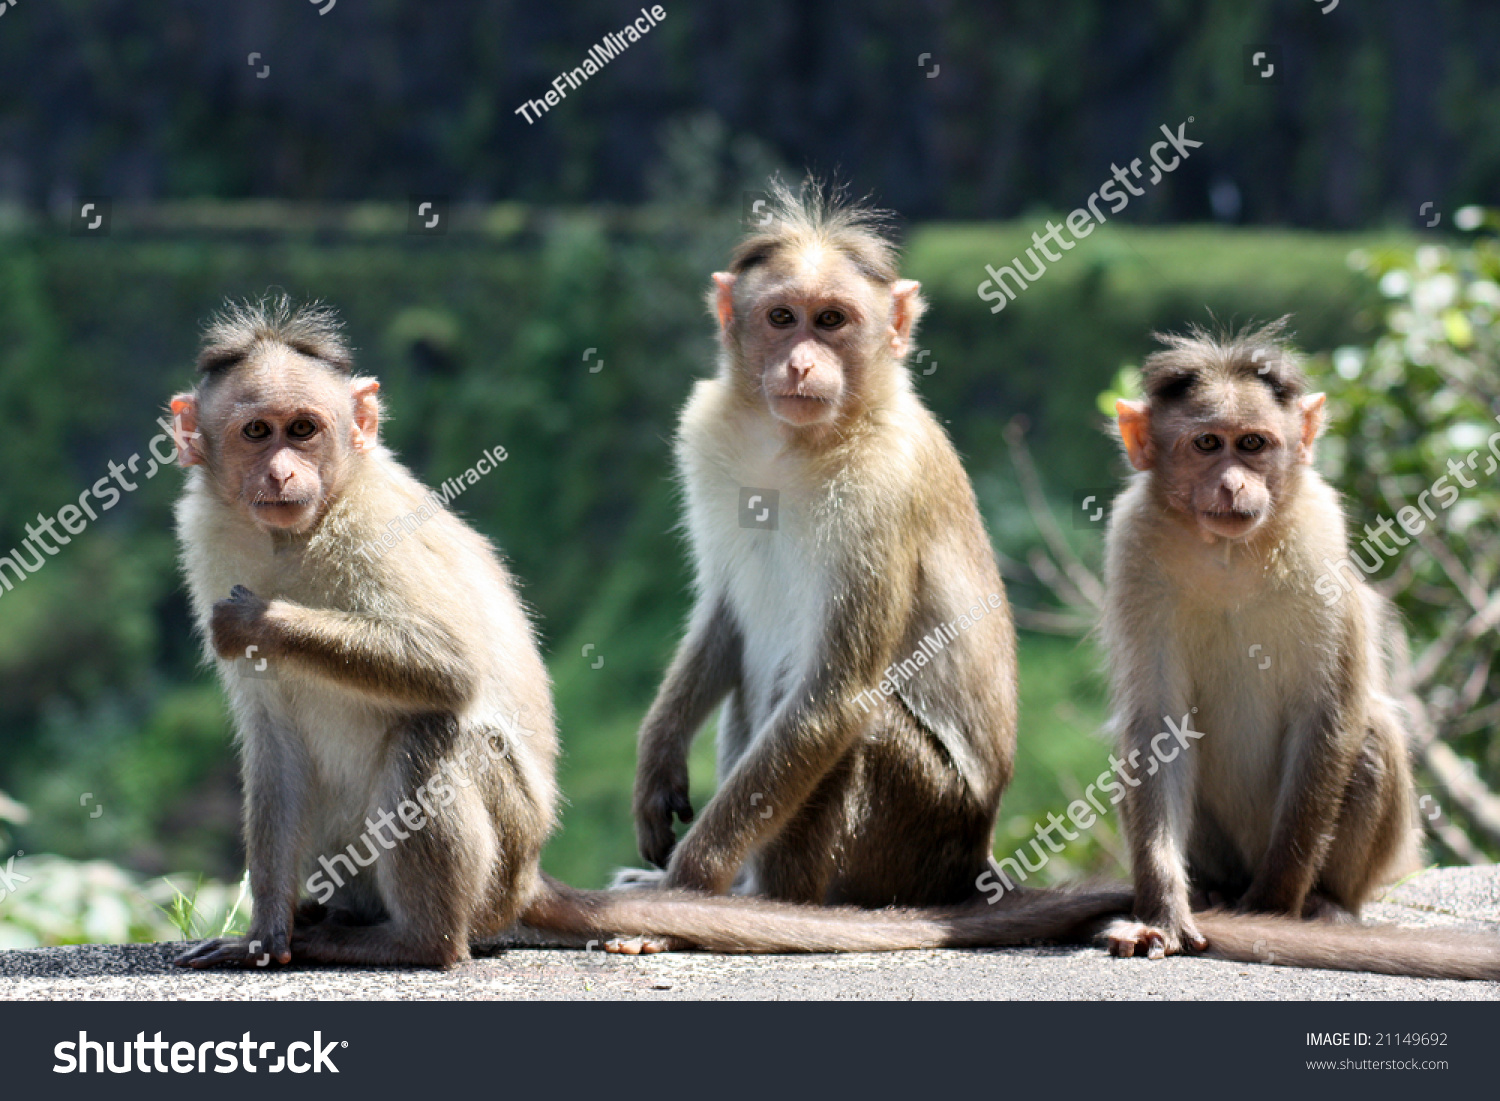 three monkeys images  Group Three Monkeys Sitting On Wall Stock Photo (Download Now ...